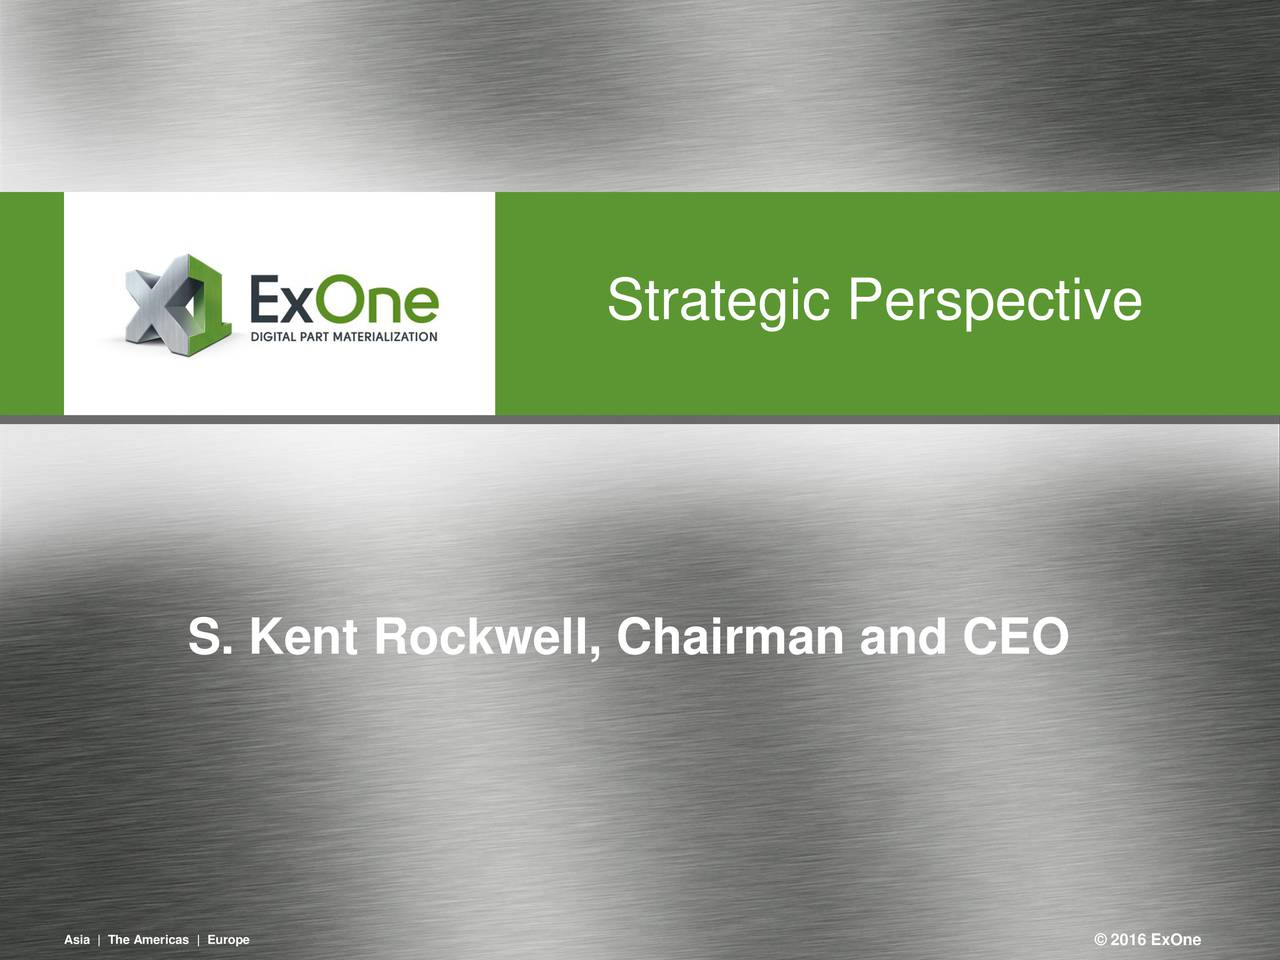 S. Kent Rockwell, Chairman and CEO Asa |TheAmercas Europe 3  2016 ExOnee